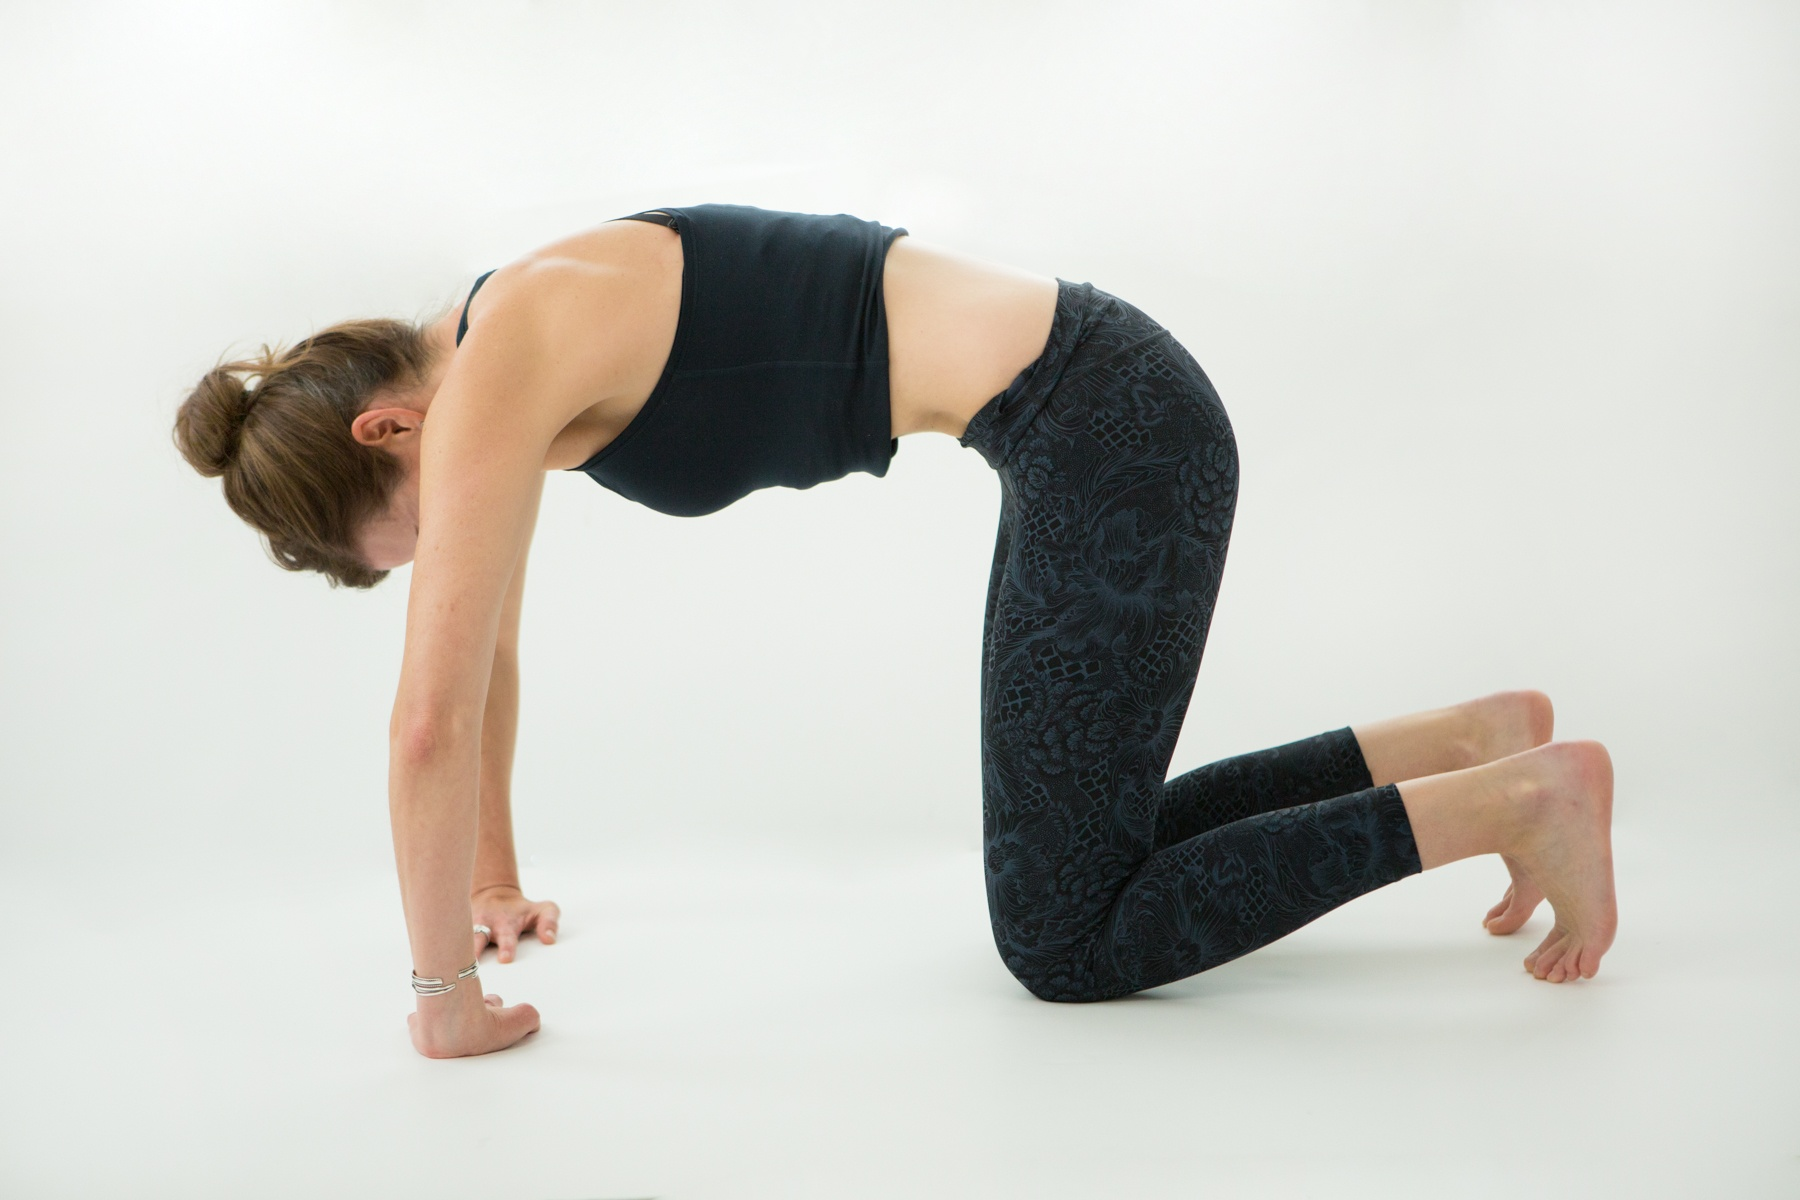 This shows how easy it is to achieve the Kegel Exercises in your own home.